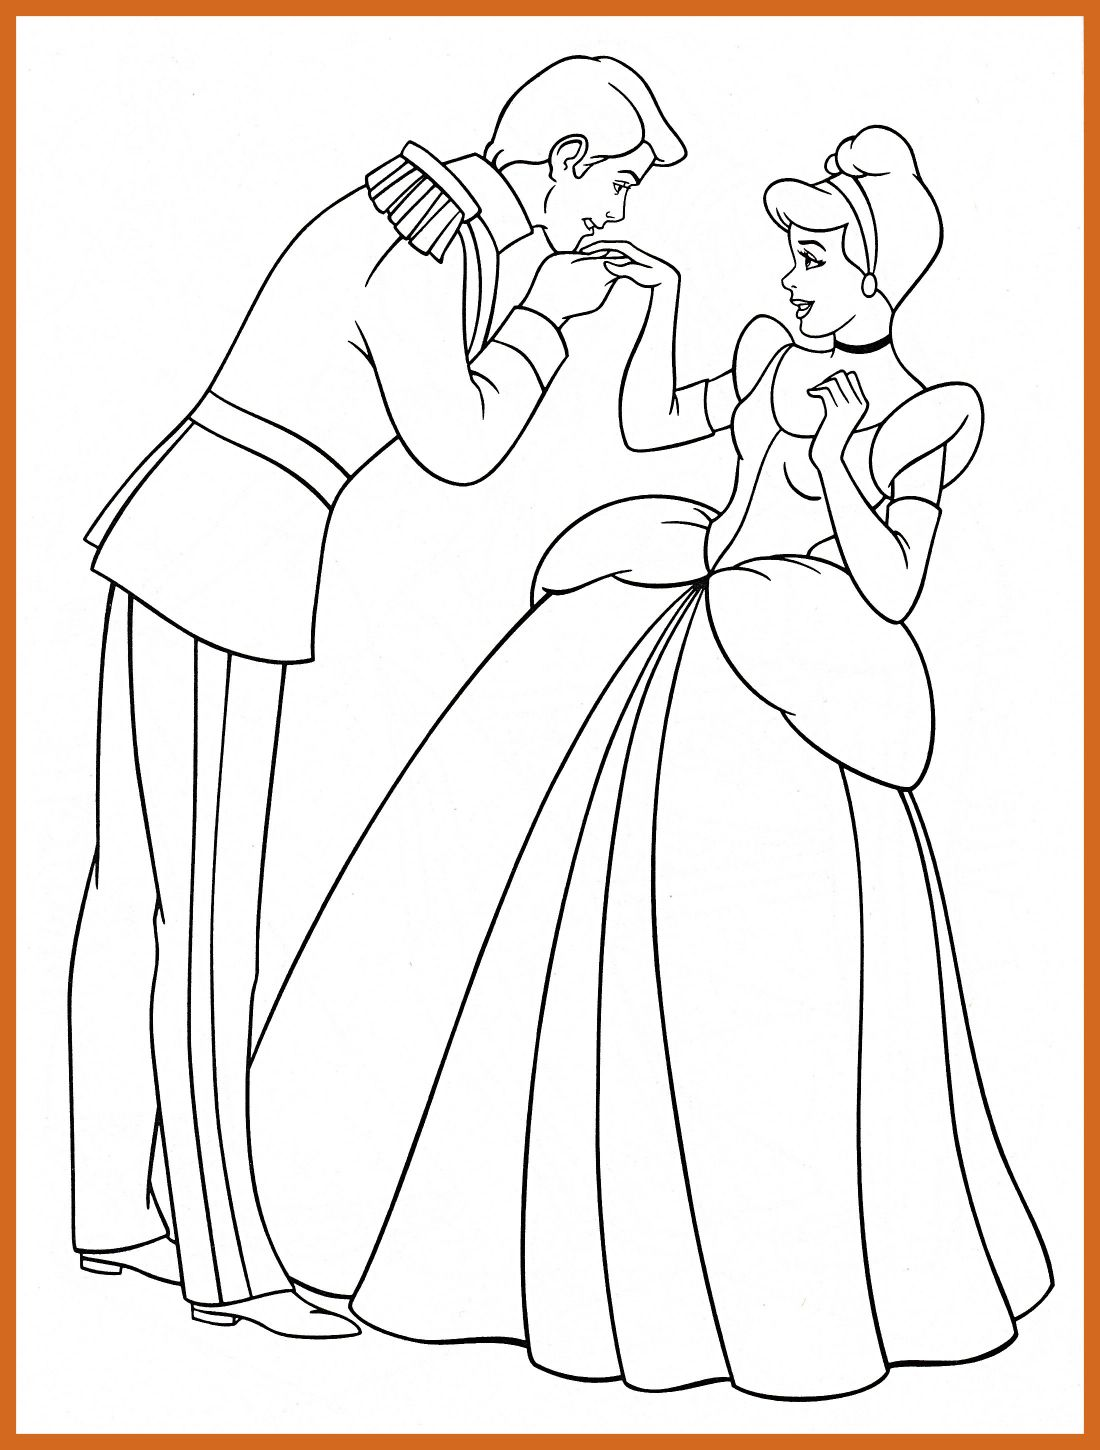 Cinderella And Prince Coloring Pages at GetColorings.com | Free ...